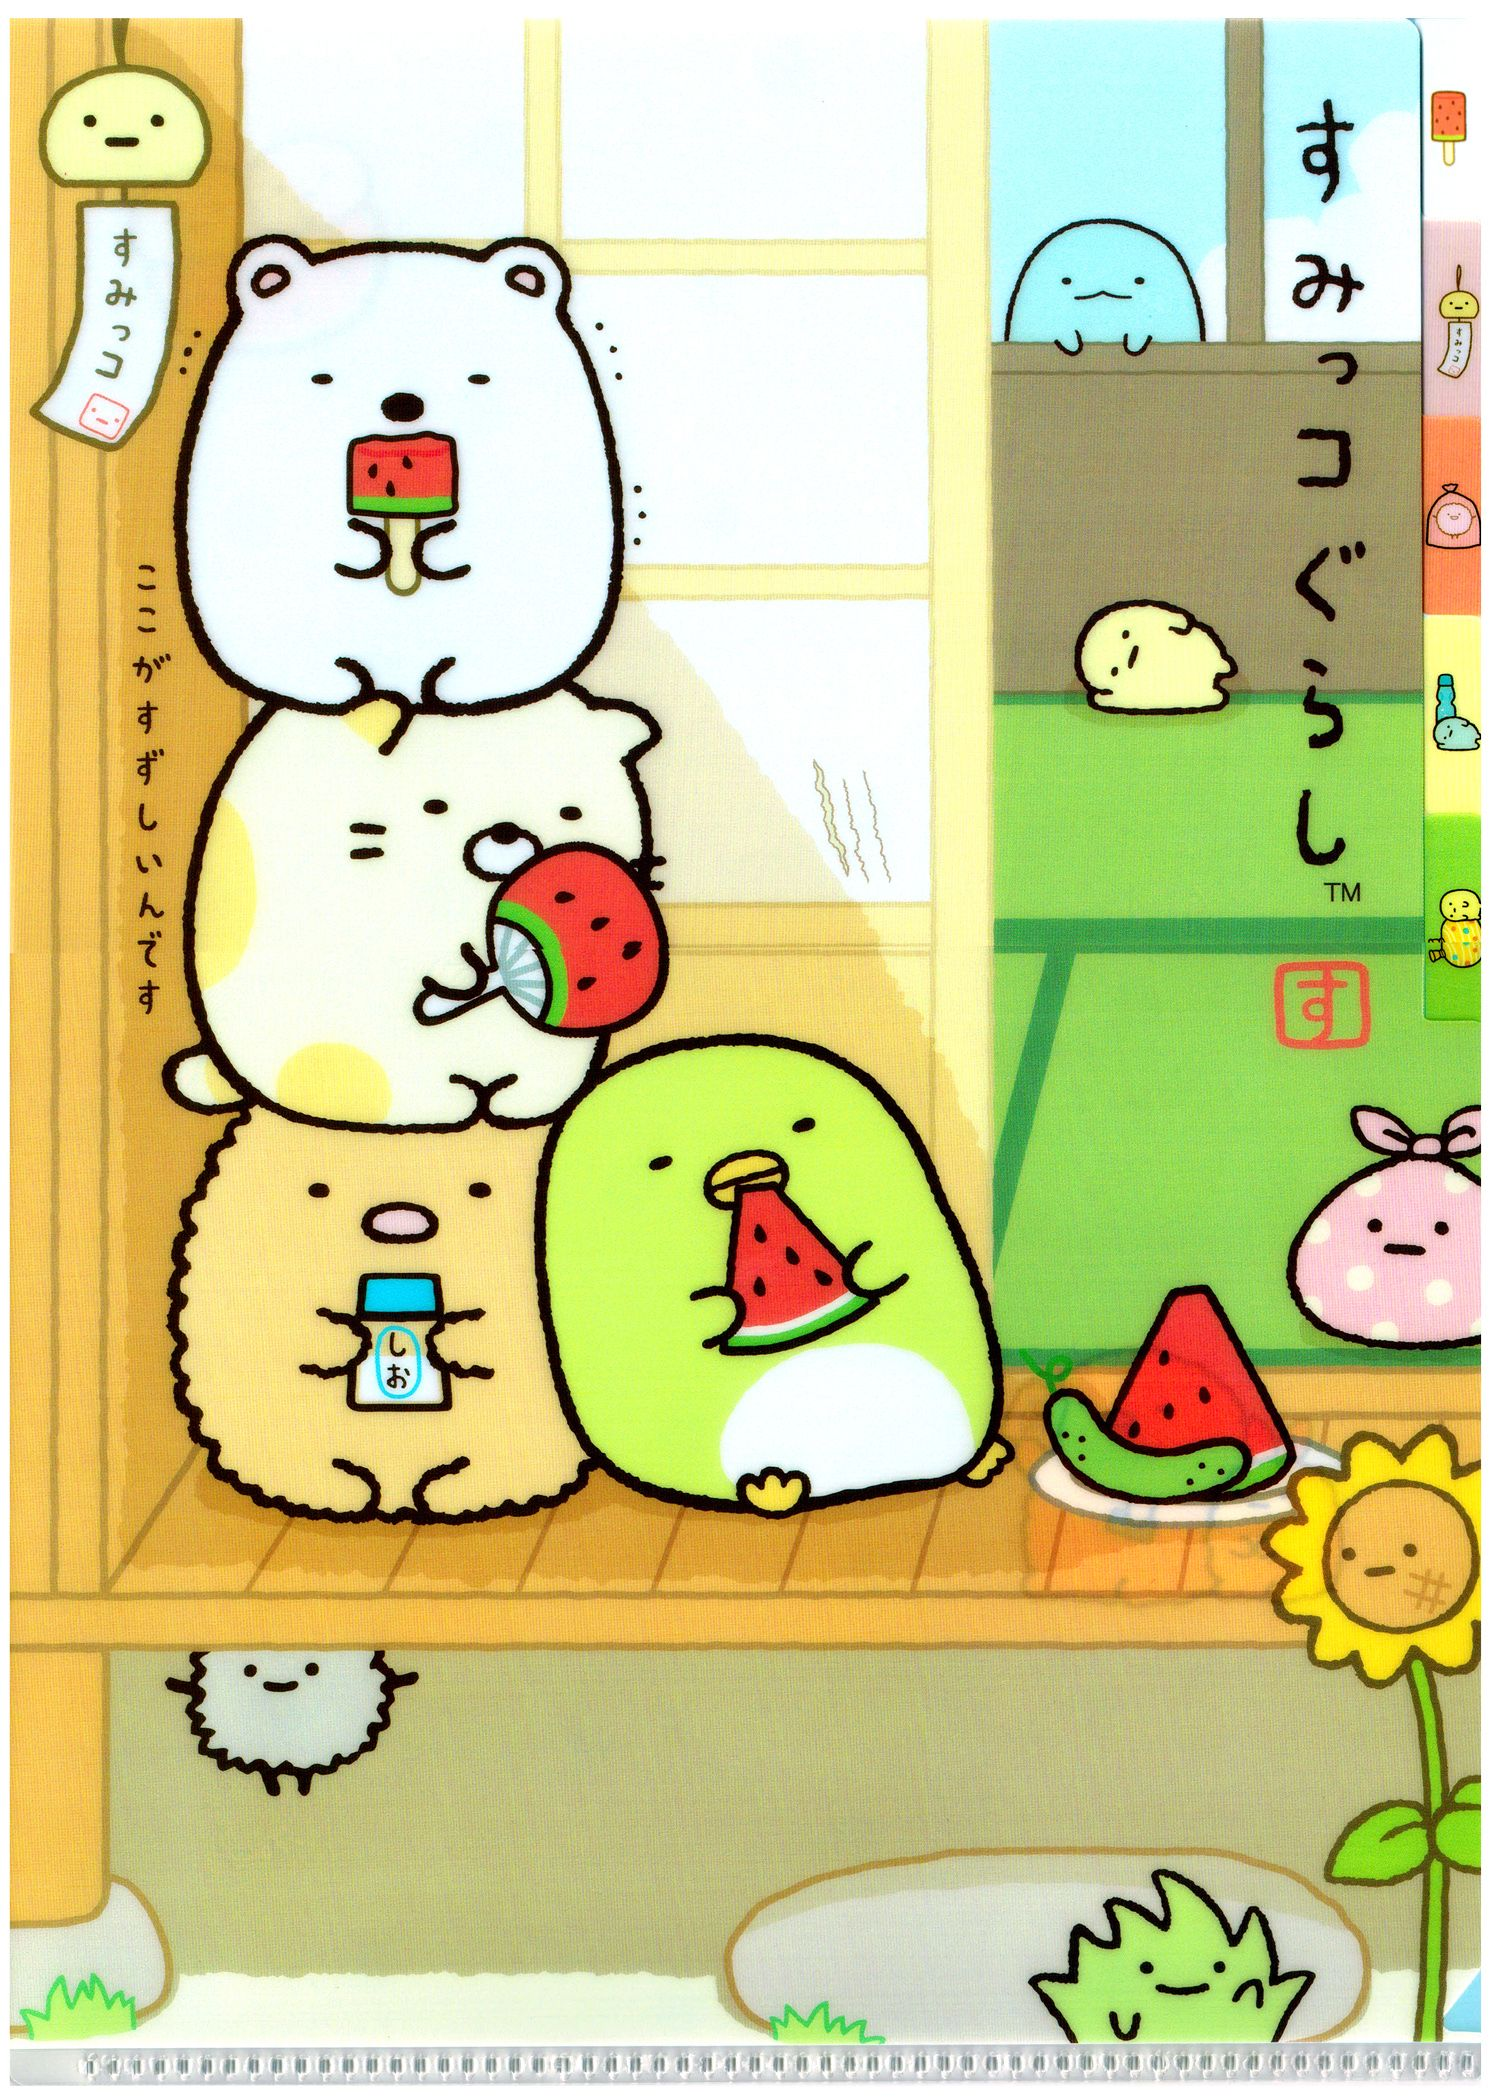 Wallpaper iphone san x - San X Sumikko Gurashi Watermelon Spa 5 Index File